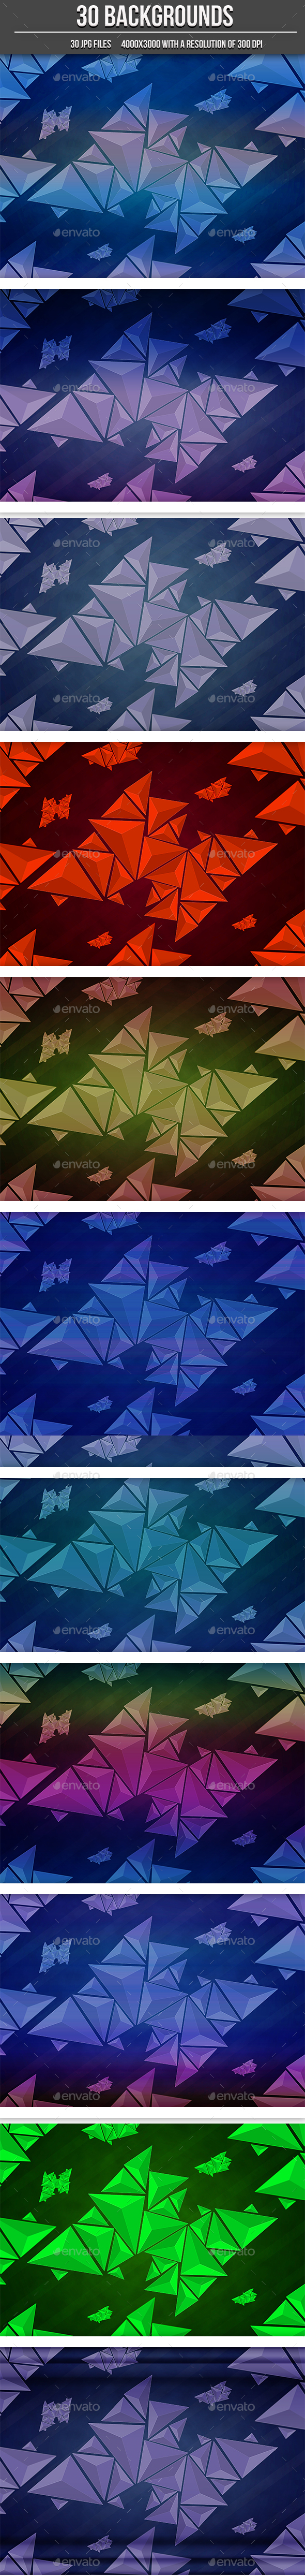 30 Abstract Triangle Backgrounds - Abstract Backgrounds